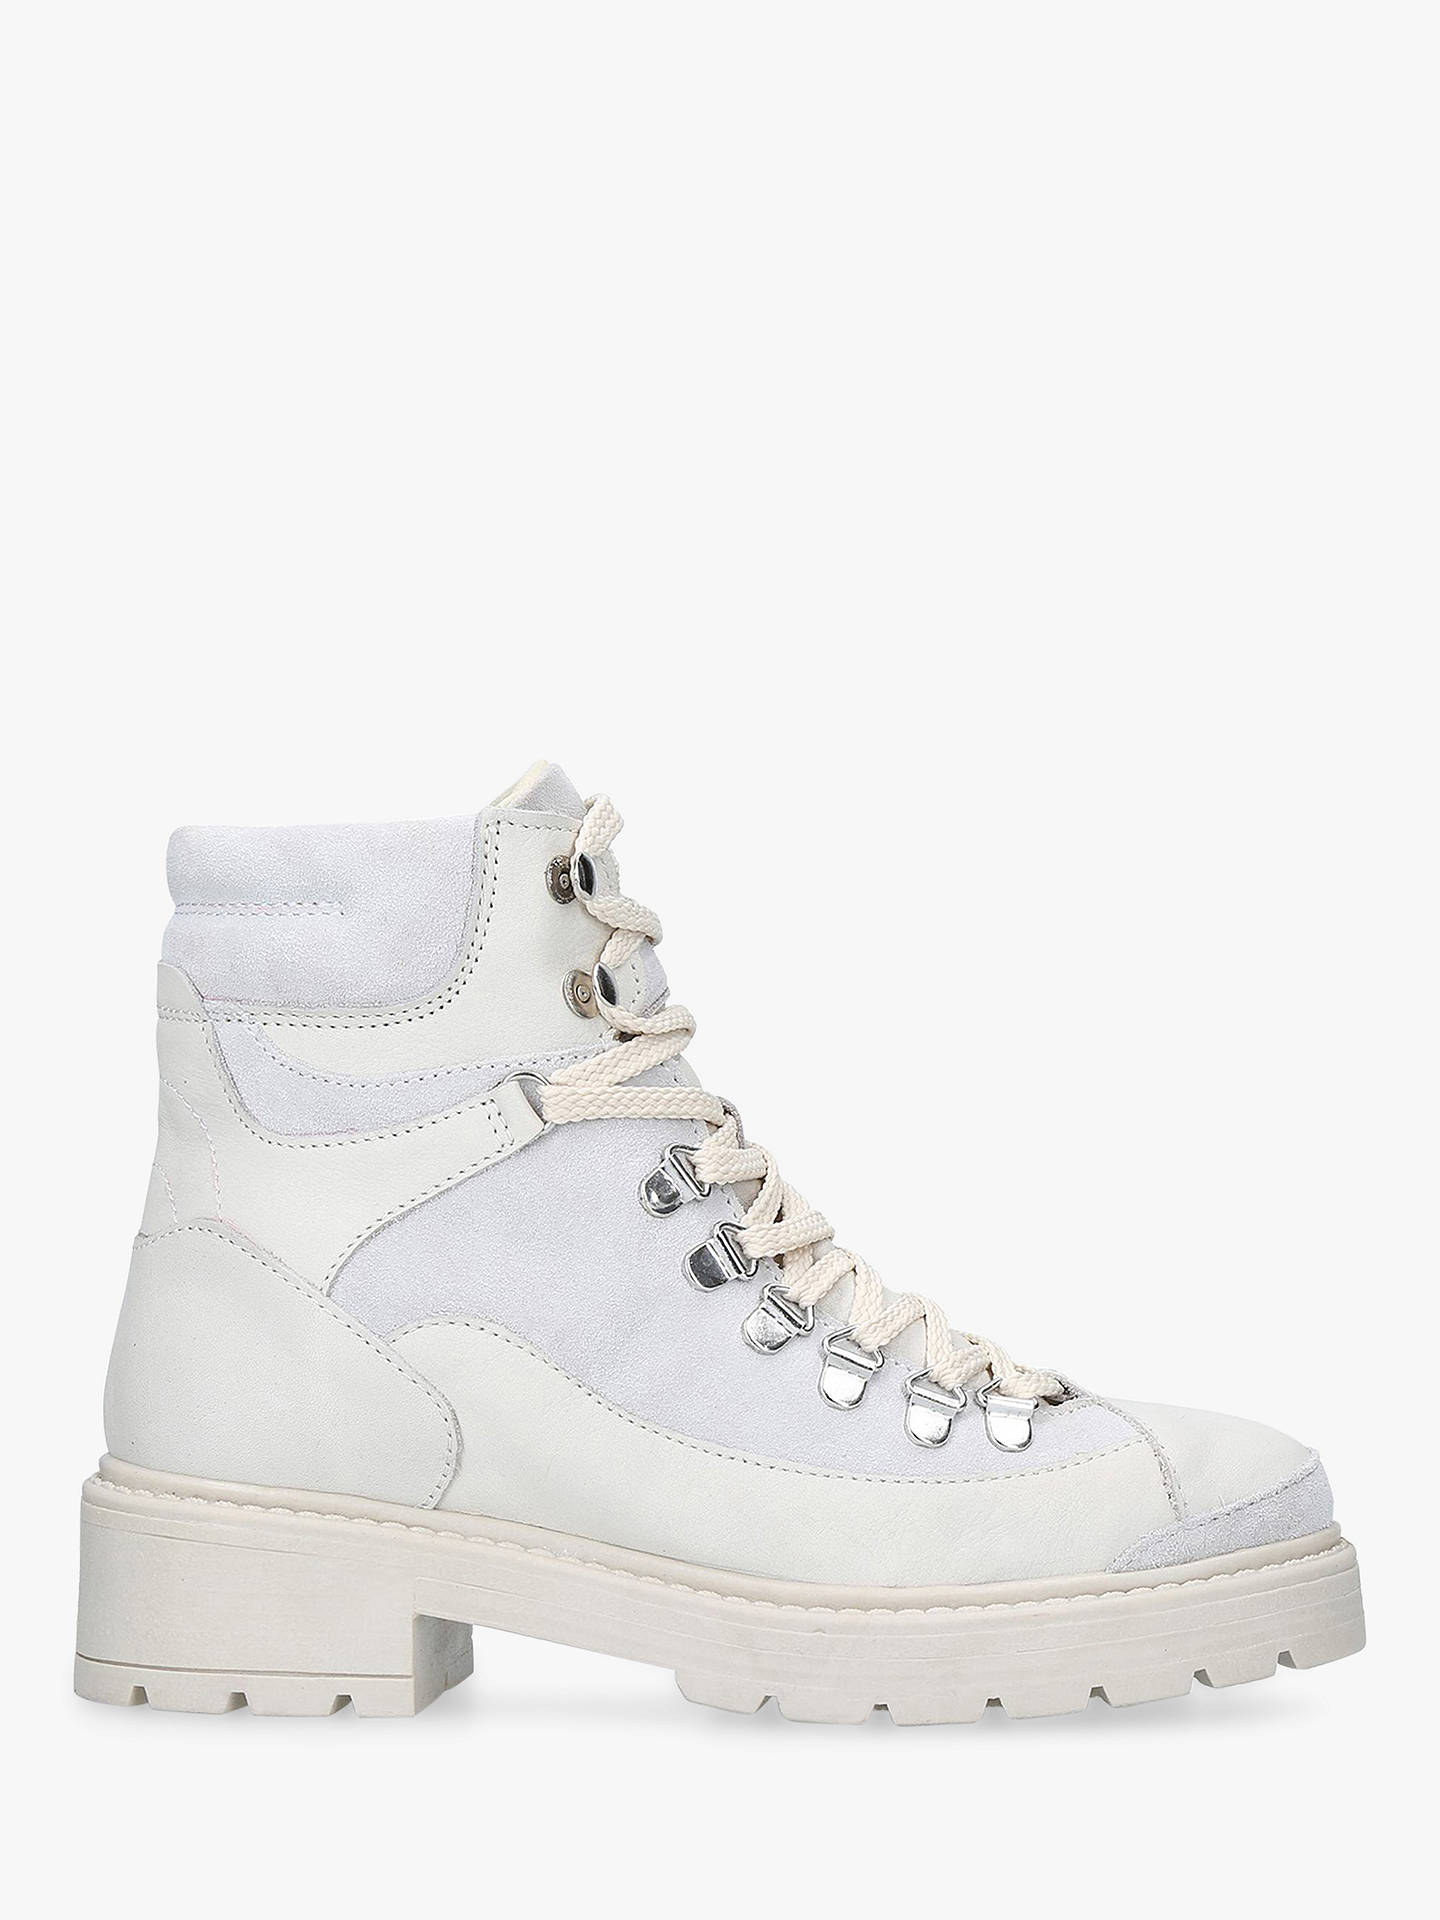 8759e04990a3 Buy Carvela Shake Leather Lace Up Ankle Boots